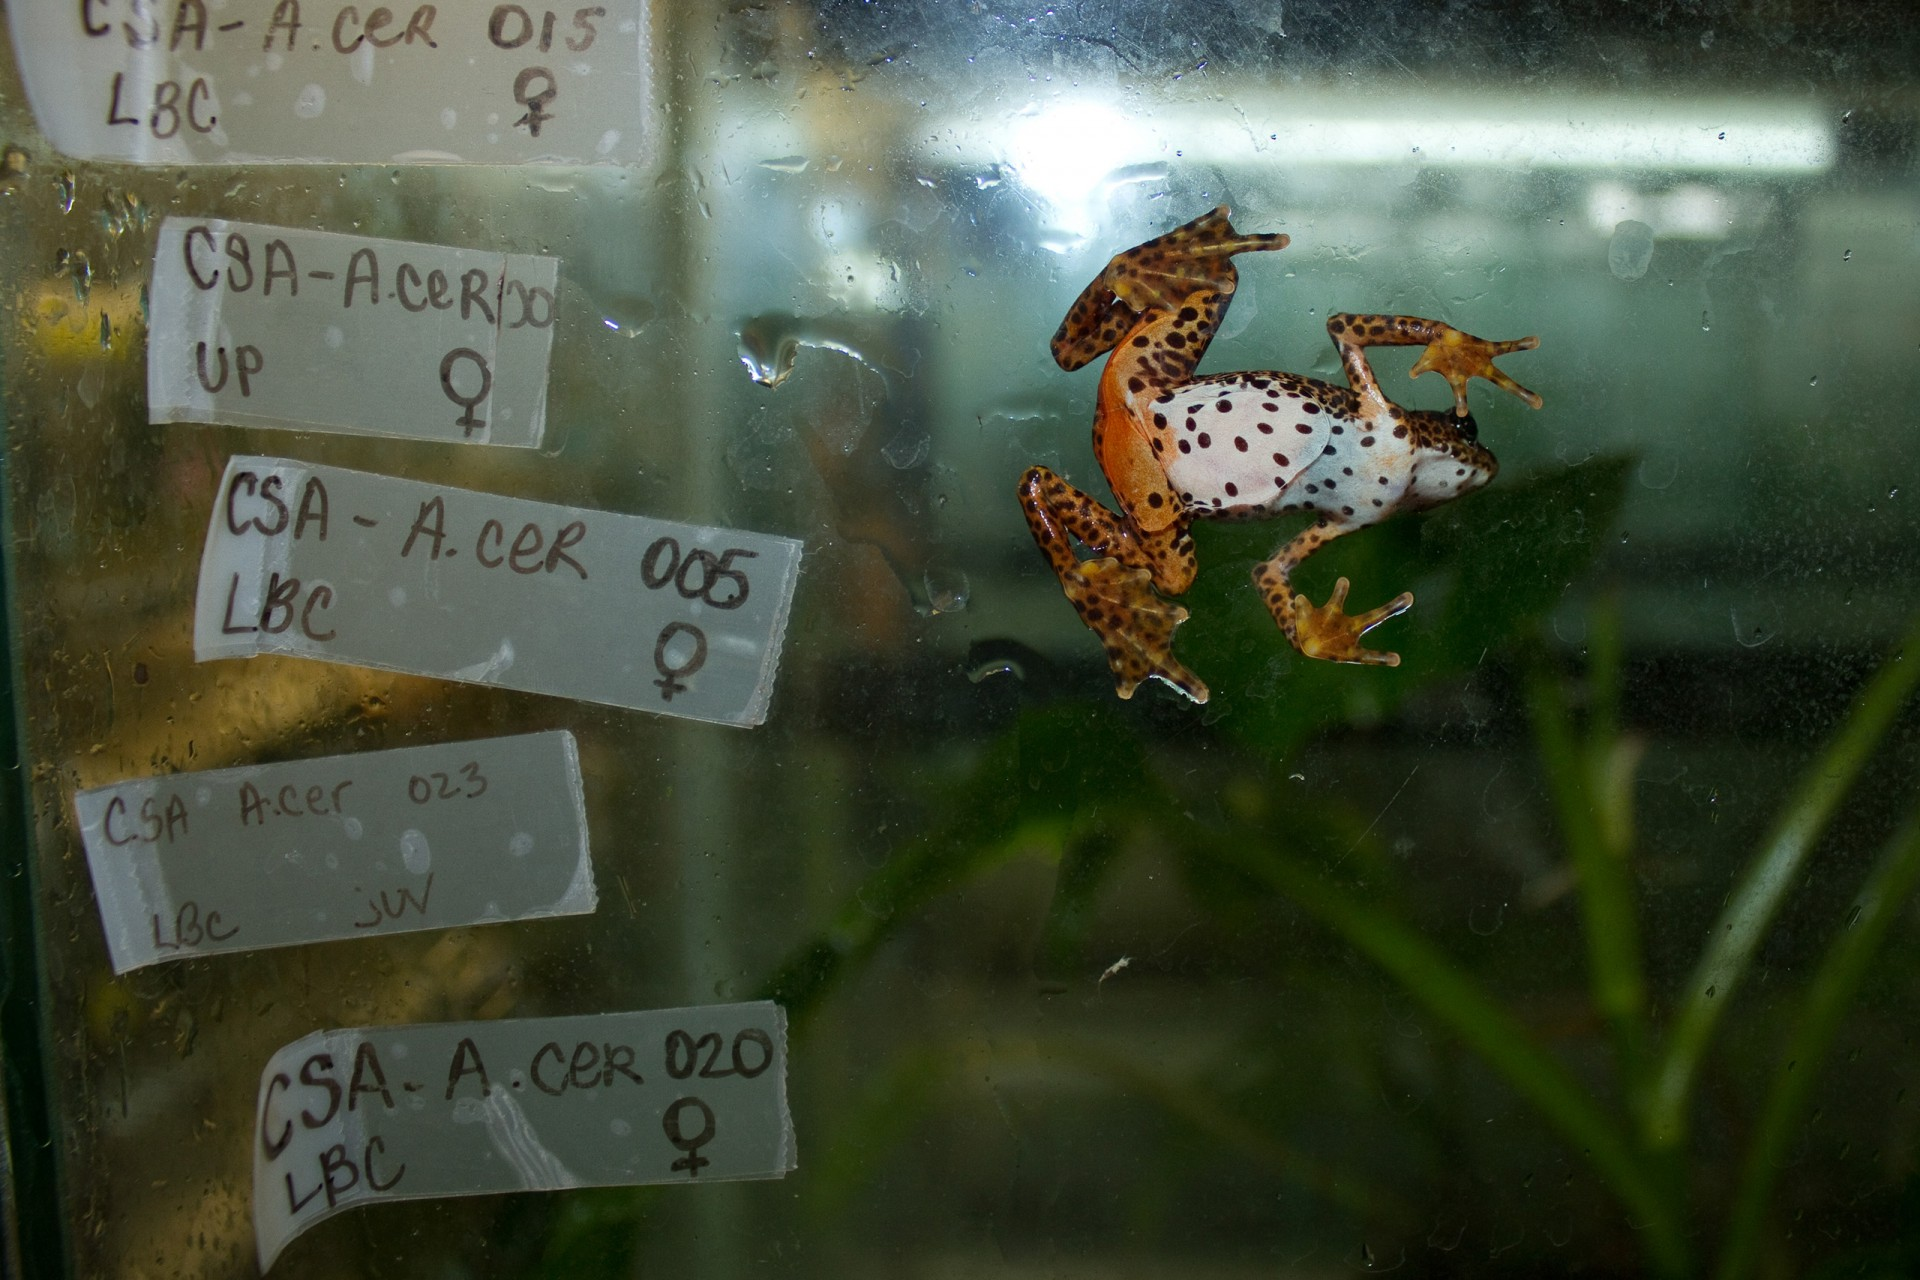 Atelopus certus is another example of a species